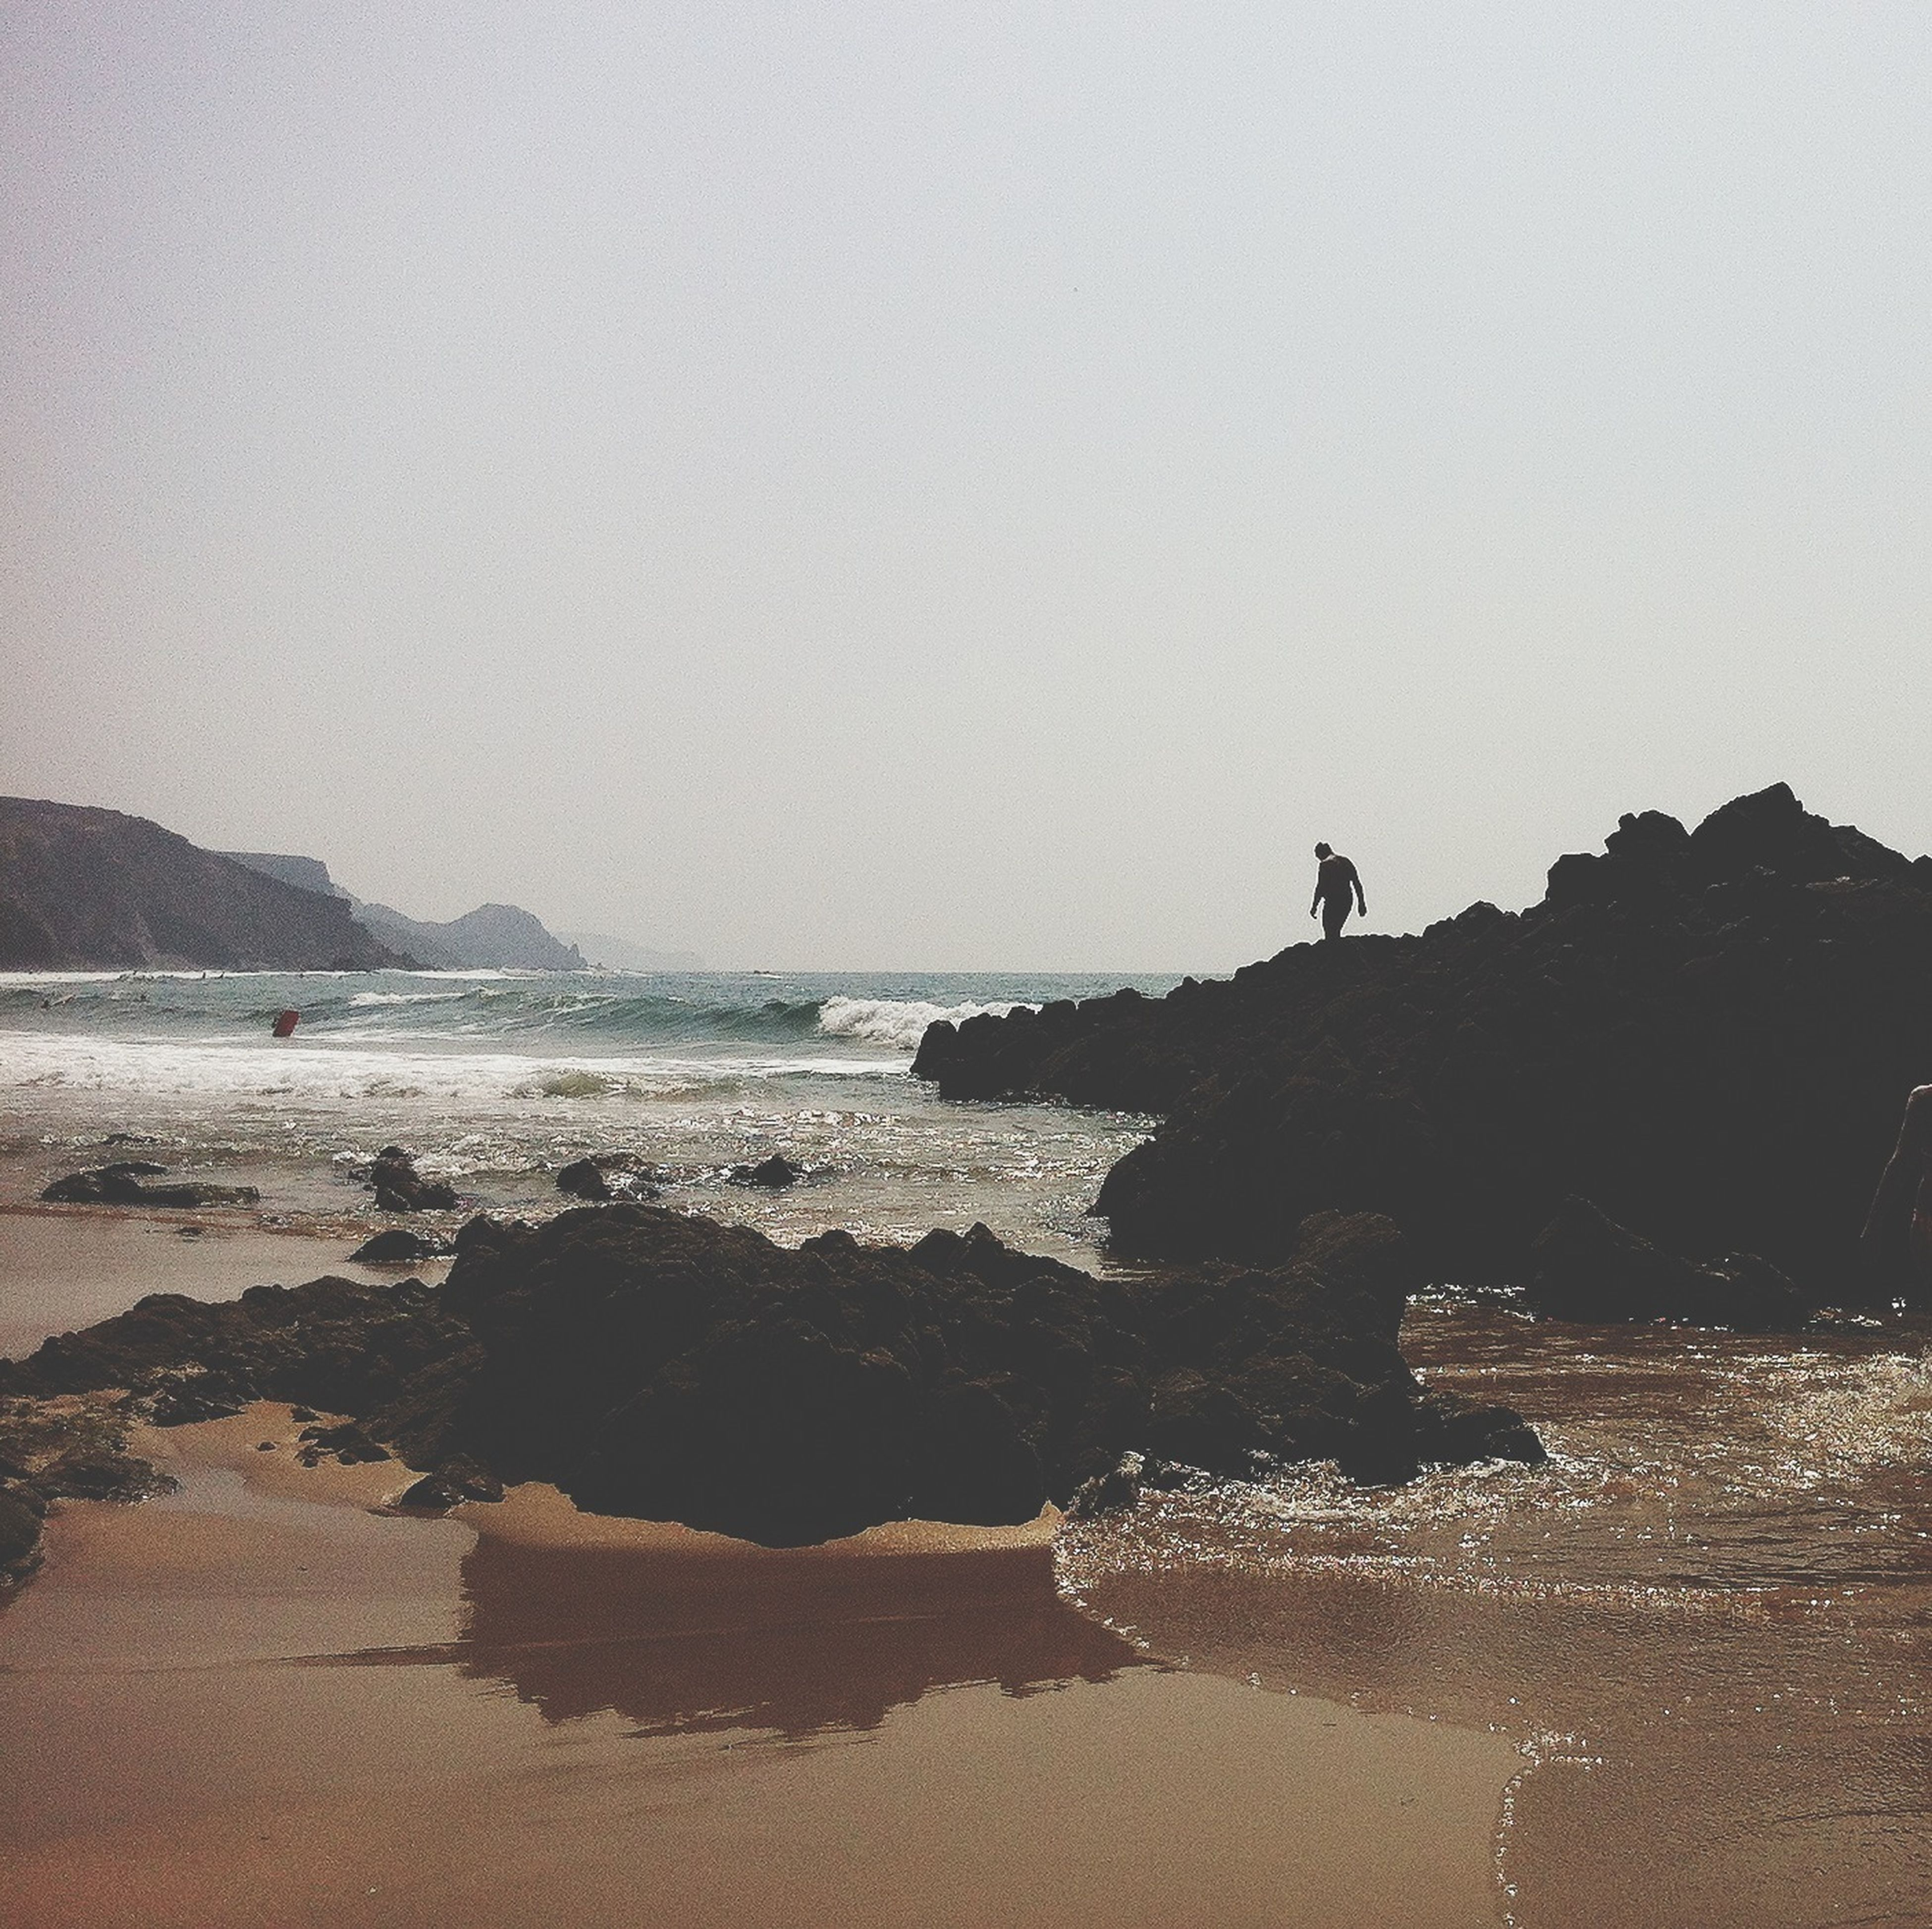 water, sea, clear sky, beach, copy space, shore, scenics, tranquil scene, silhouette, nature, beauty in nature, tranquility, horizon over water, sand, wave, rock - object, sky, outdoors, coastline